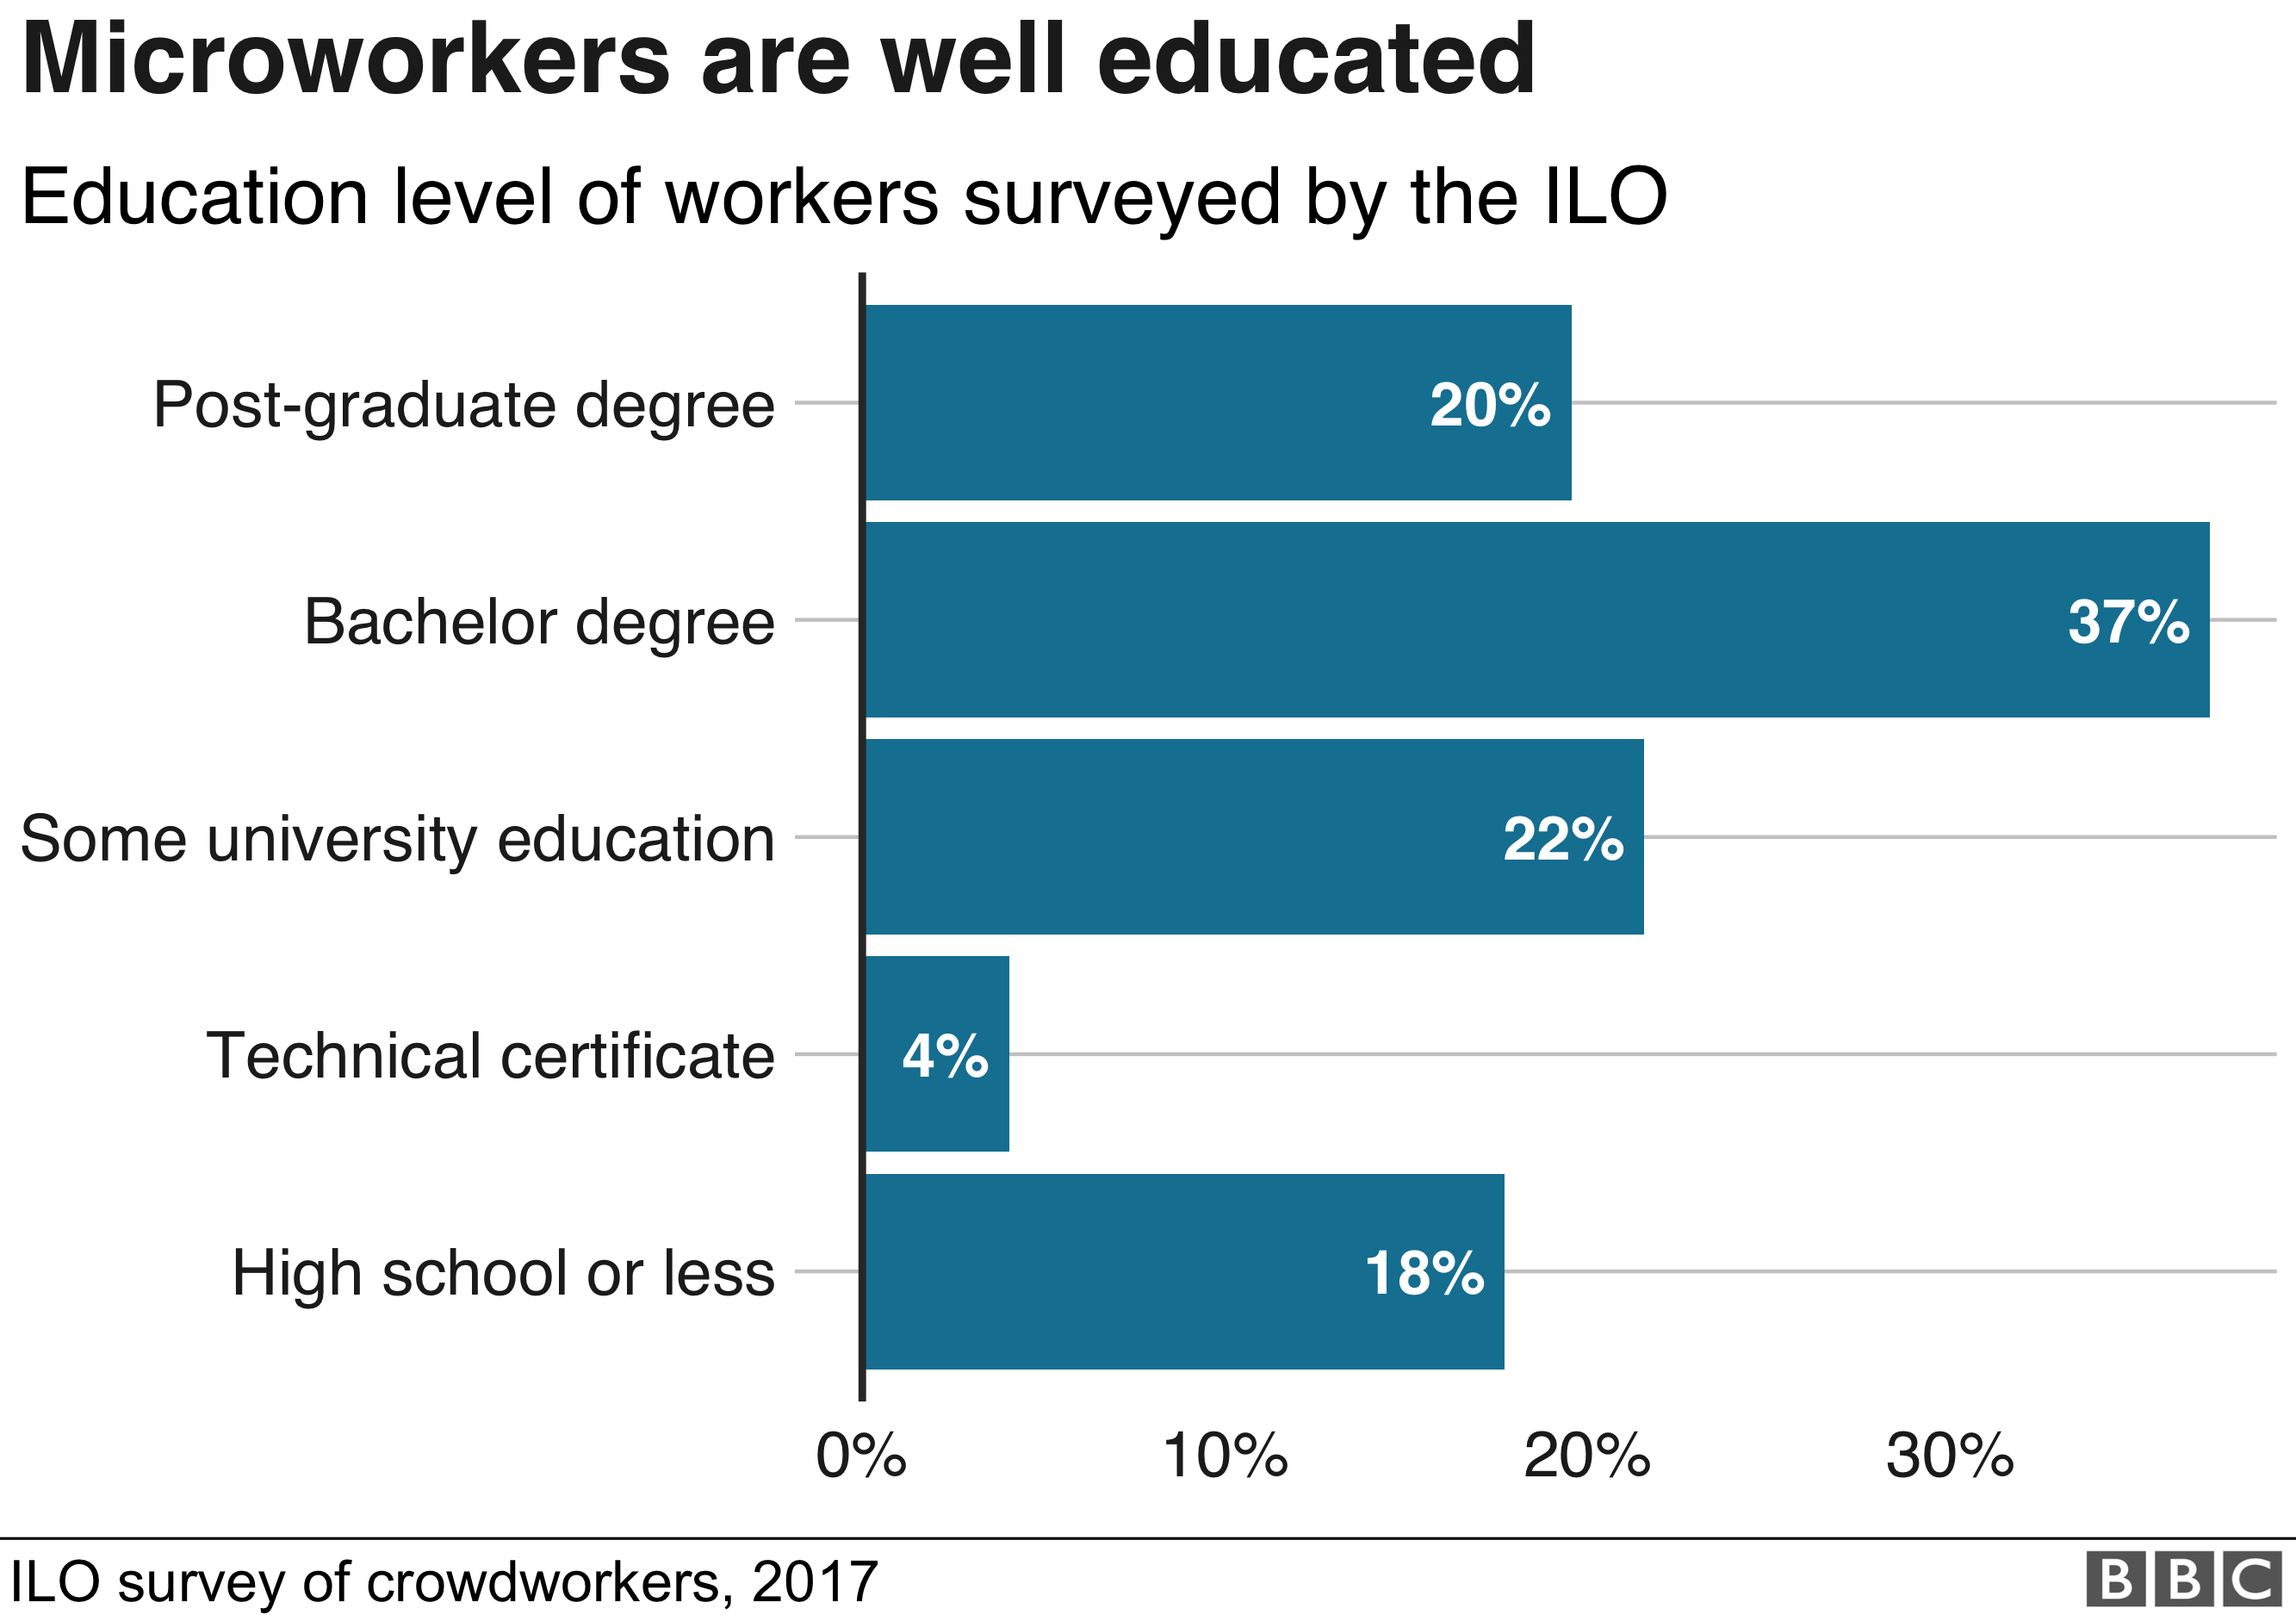 Chart showing the level of education of microworkers